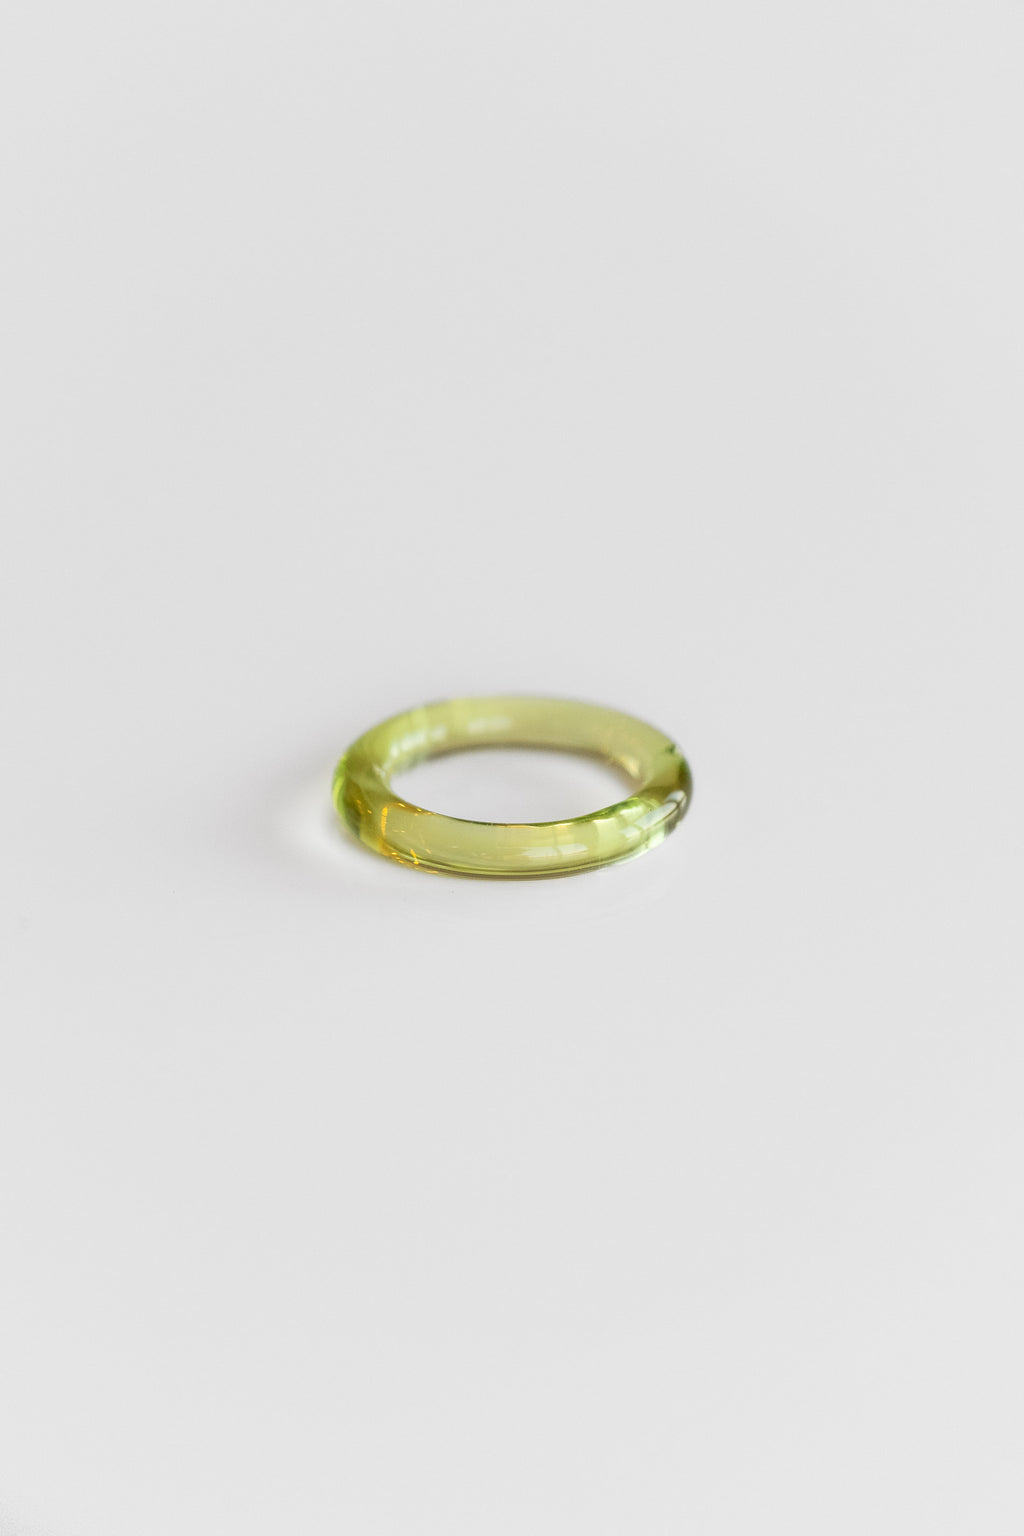 THIN GLASS RING IN TRANSPARENT GREEN